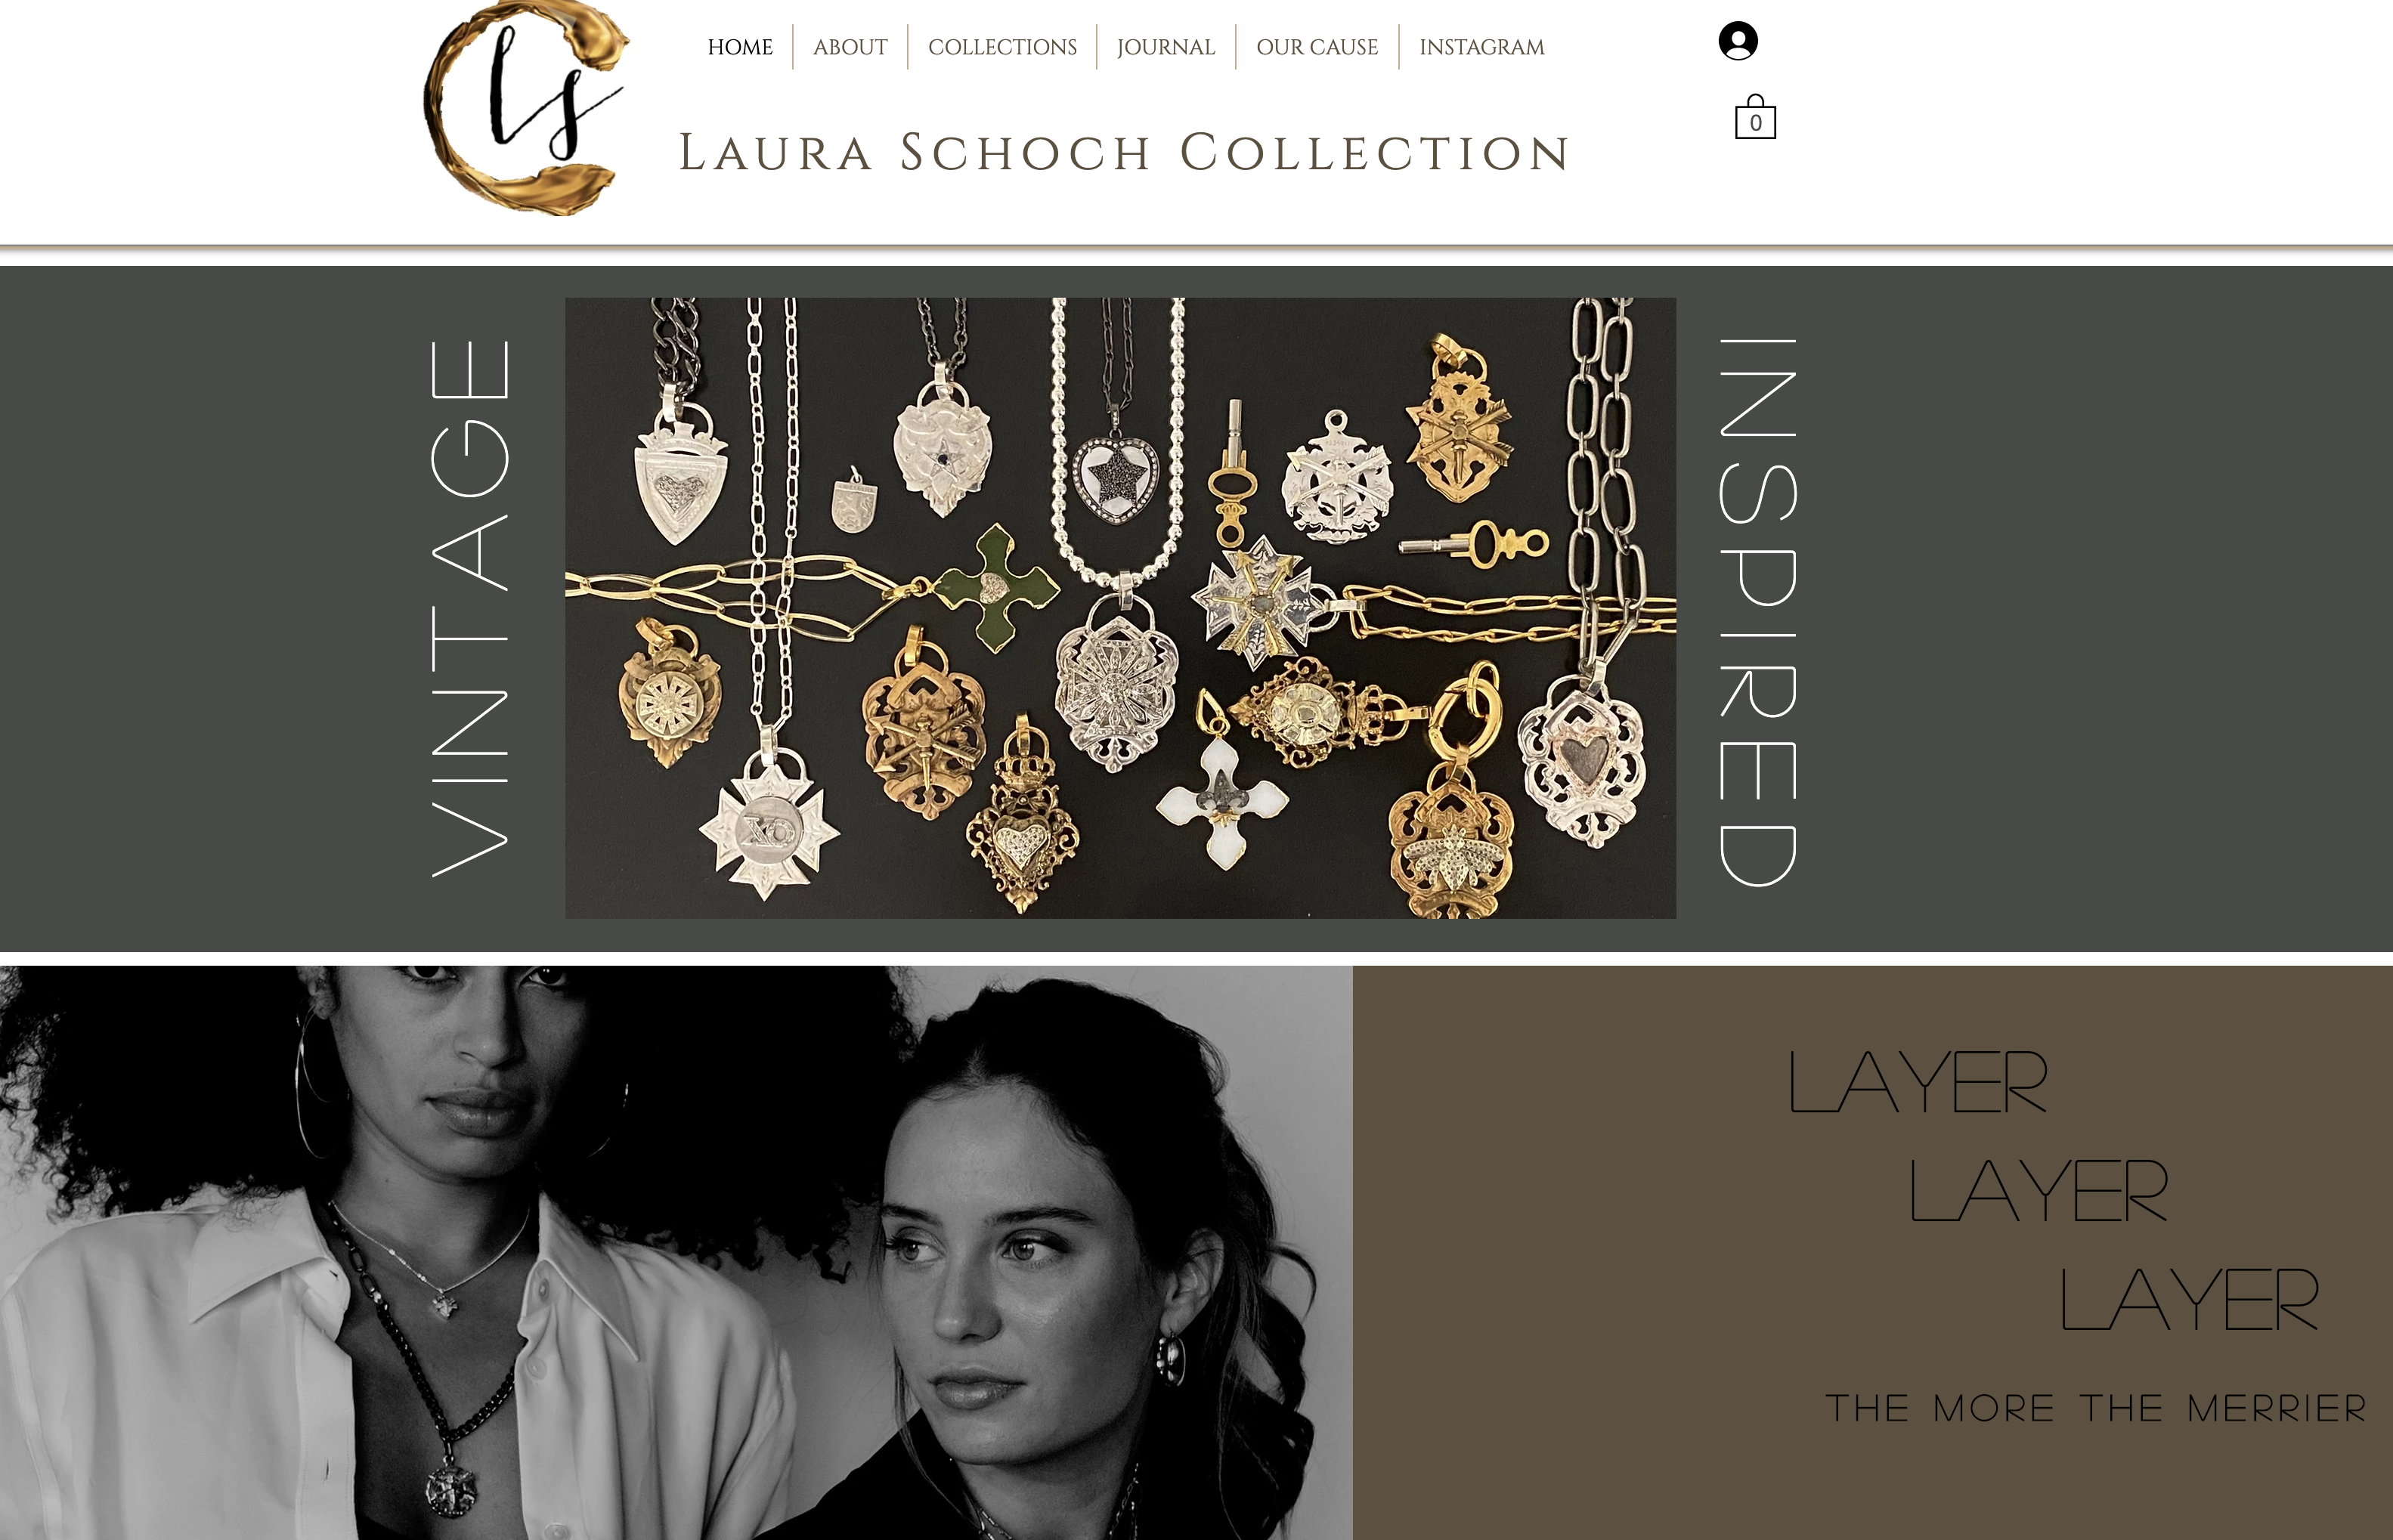 Laura Schoch Collection